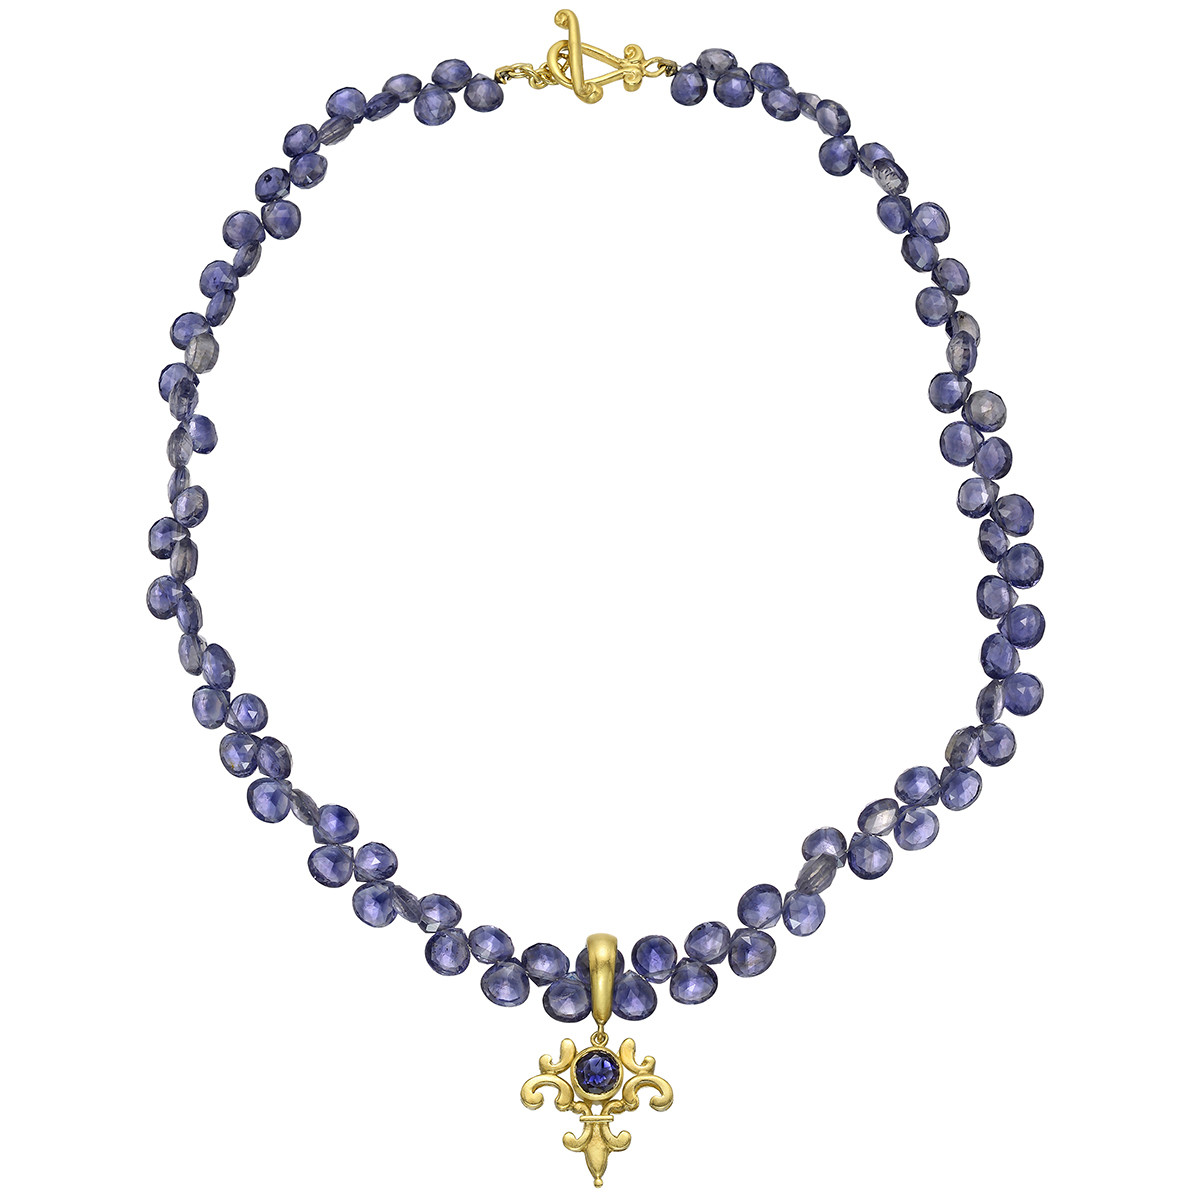 18k Yellow Gold & Iolite Bead Necklace